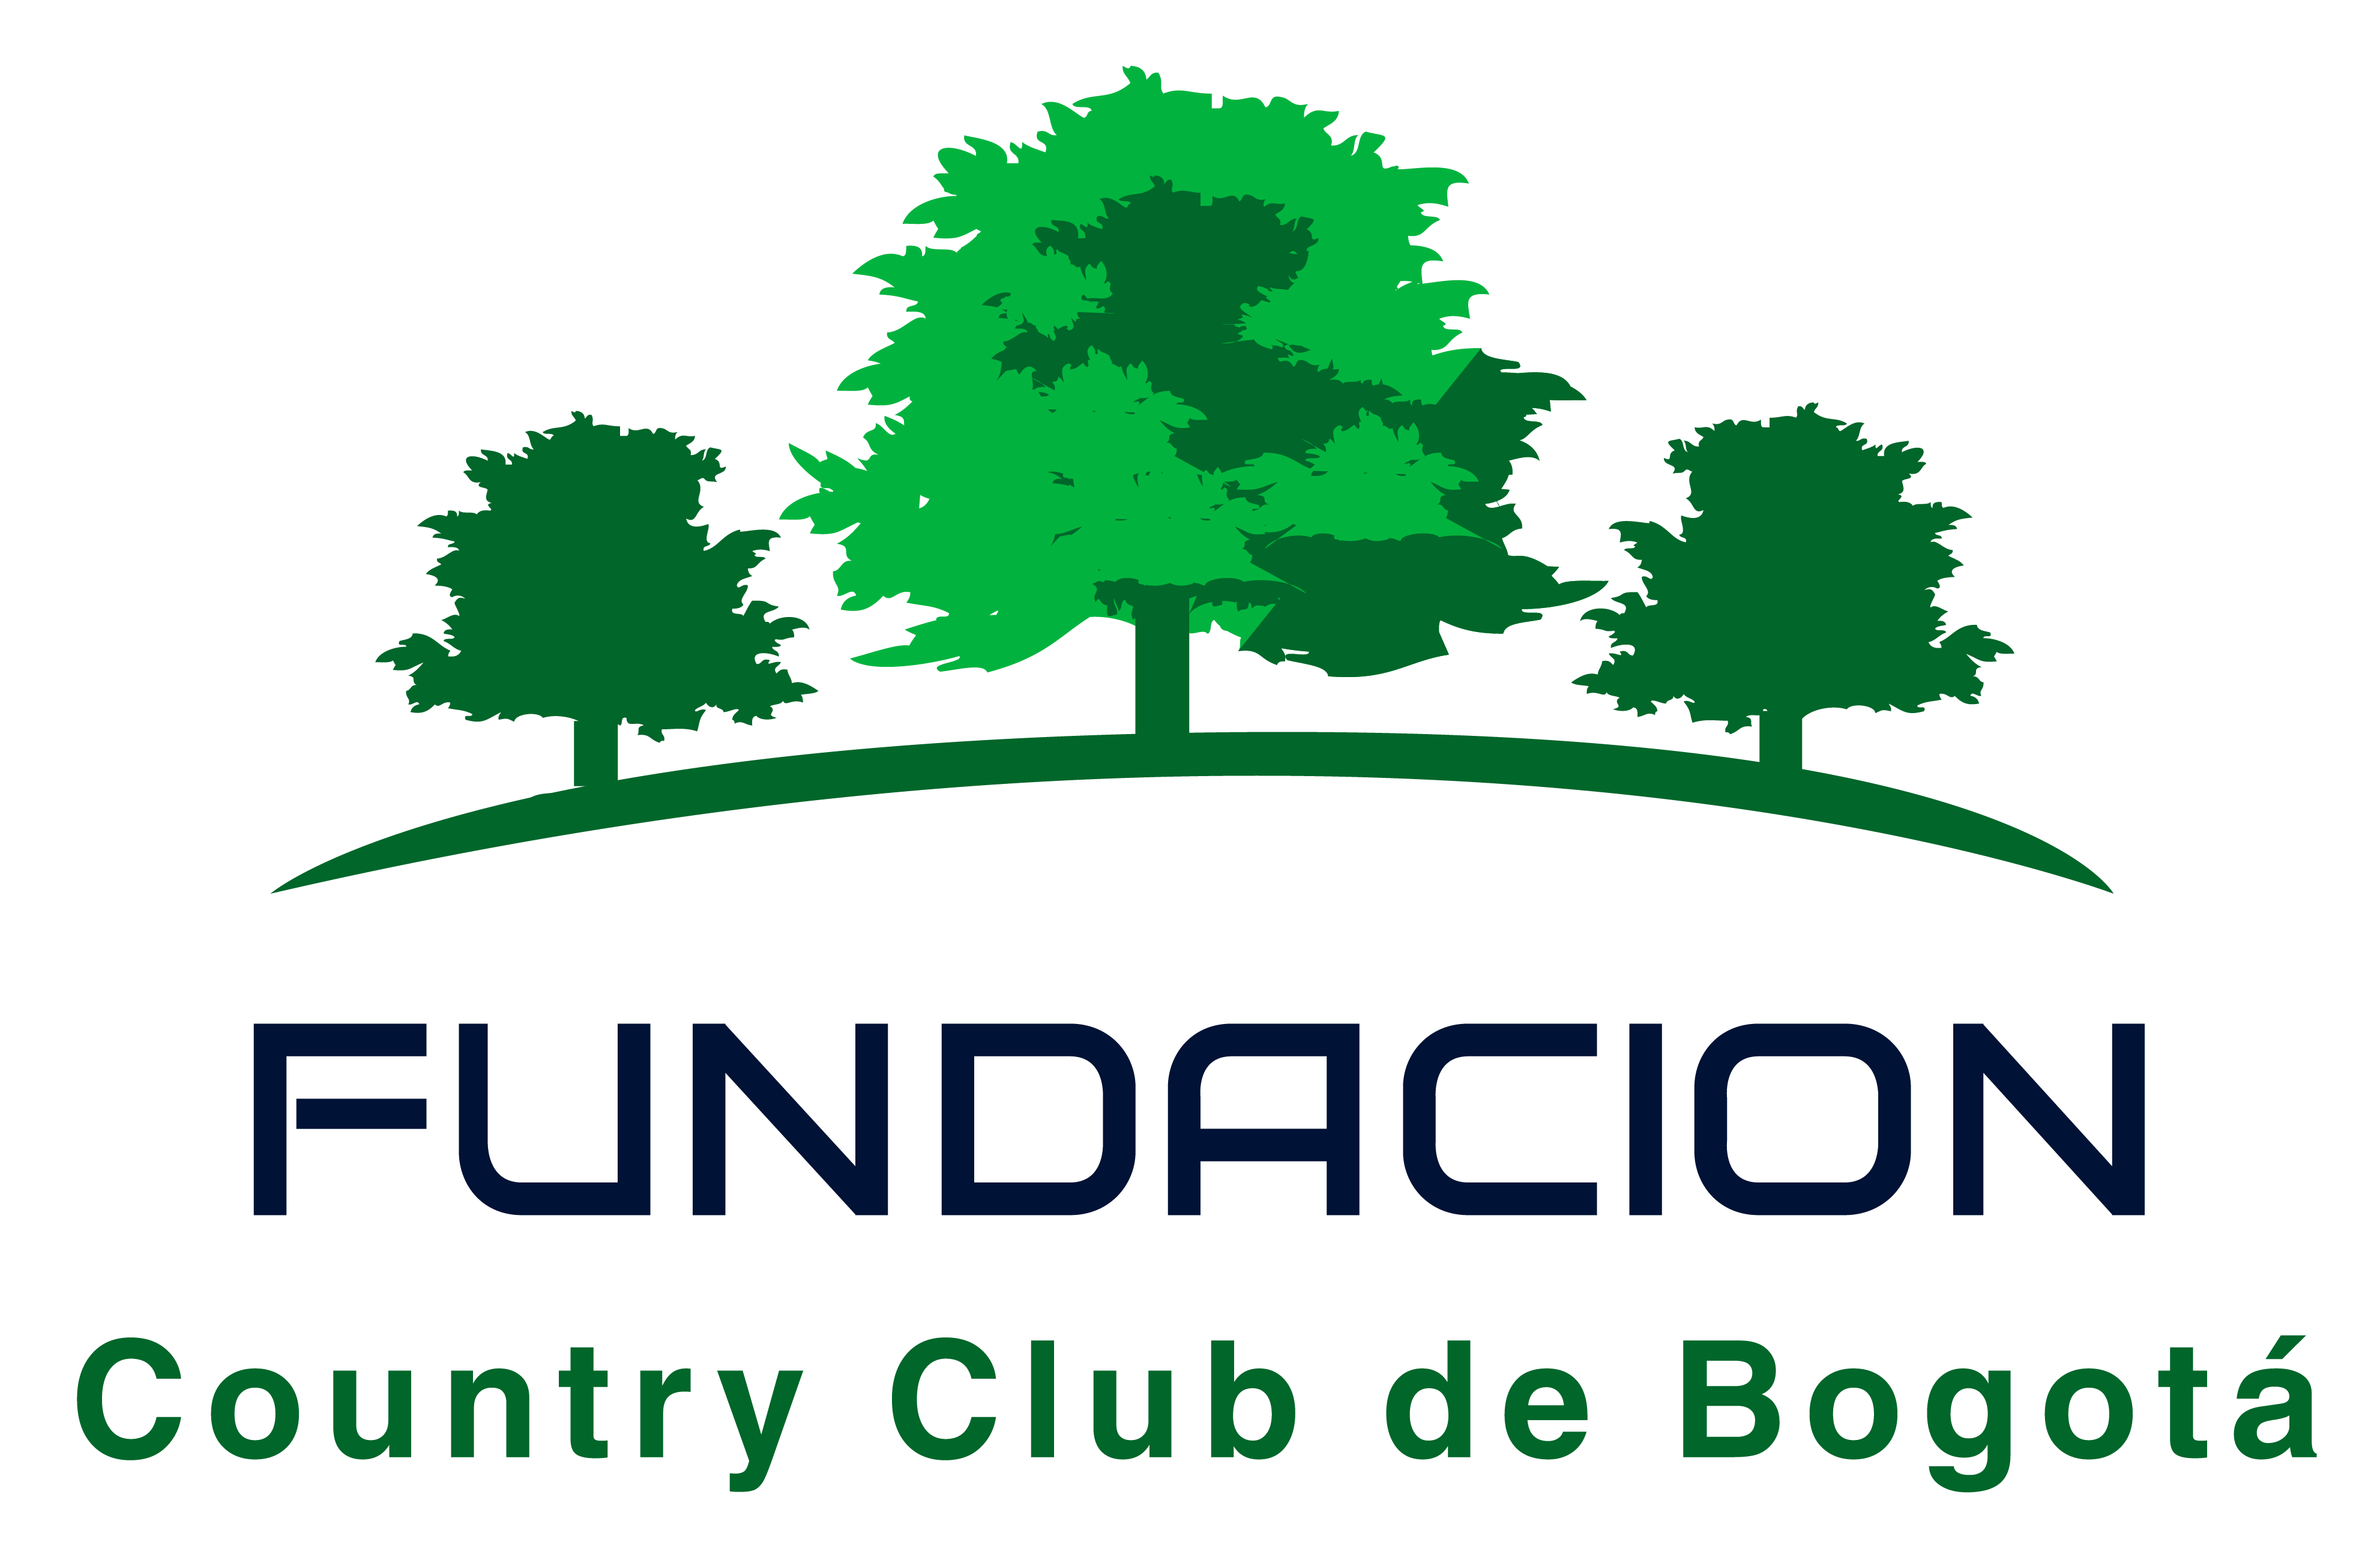 Fundacion Country